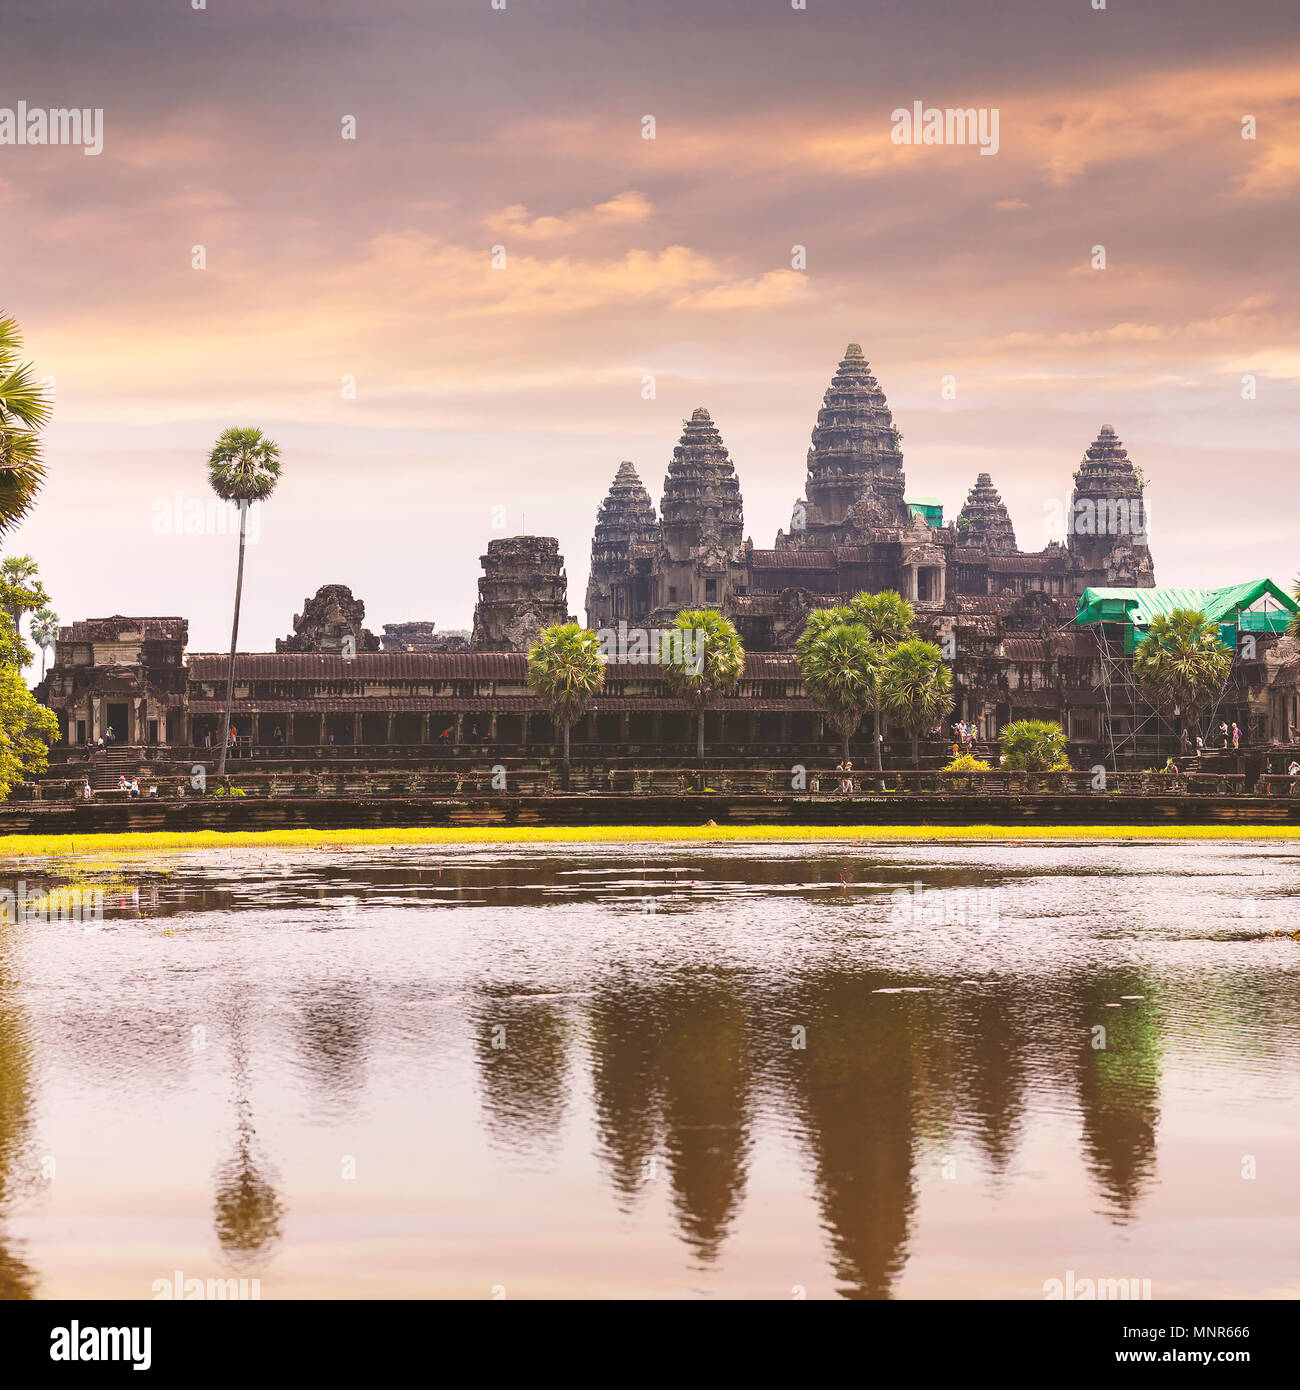 Angkor Wat temple with reflecting in water - Stock Image